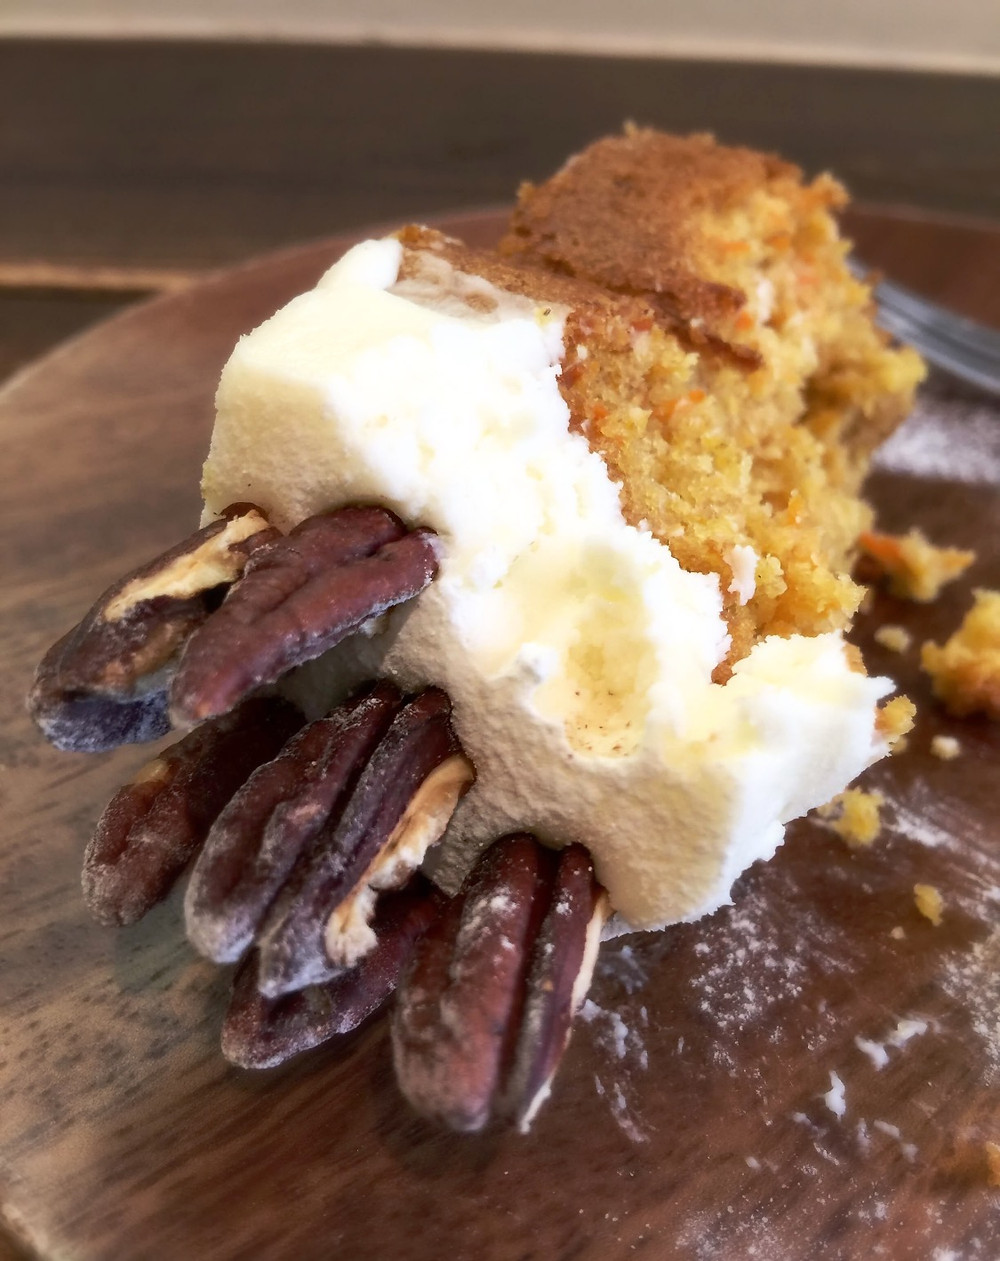 Pecans, cream cheese frosting on carrot cake